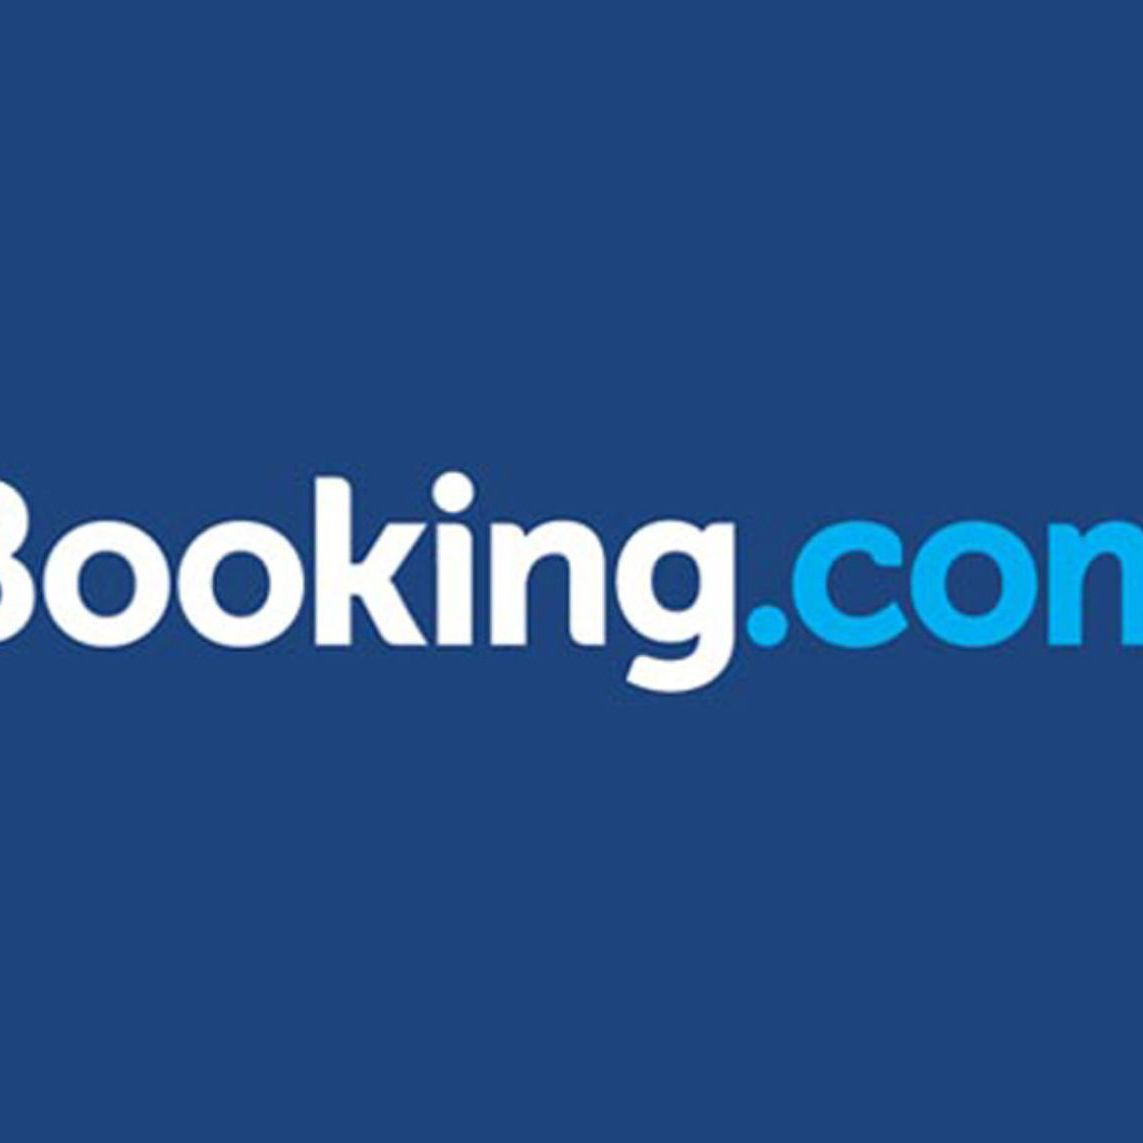 The 10 Best Hotel Booking Sites of 2019